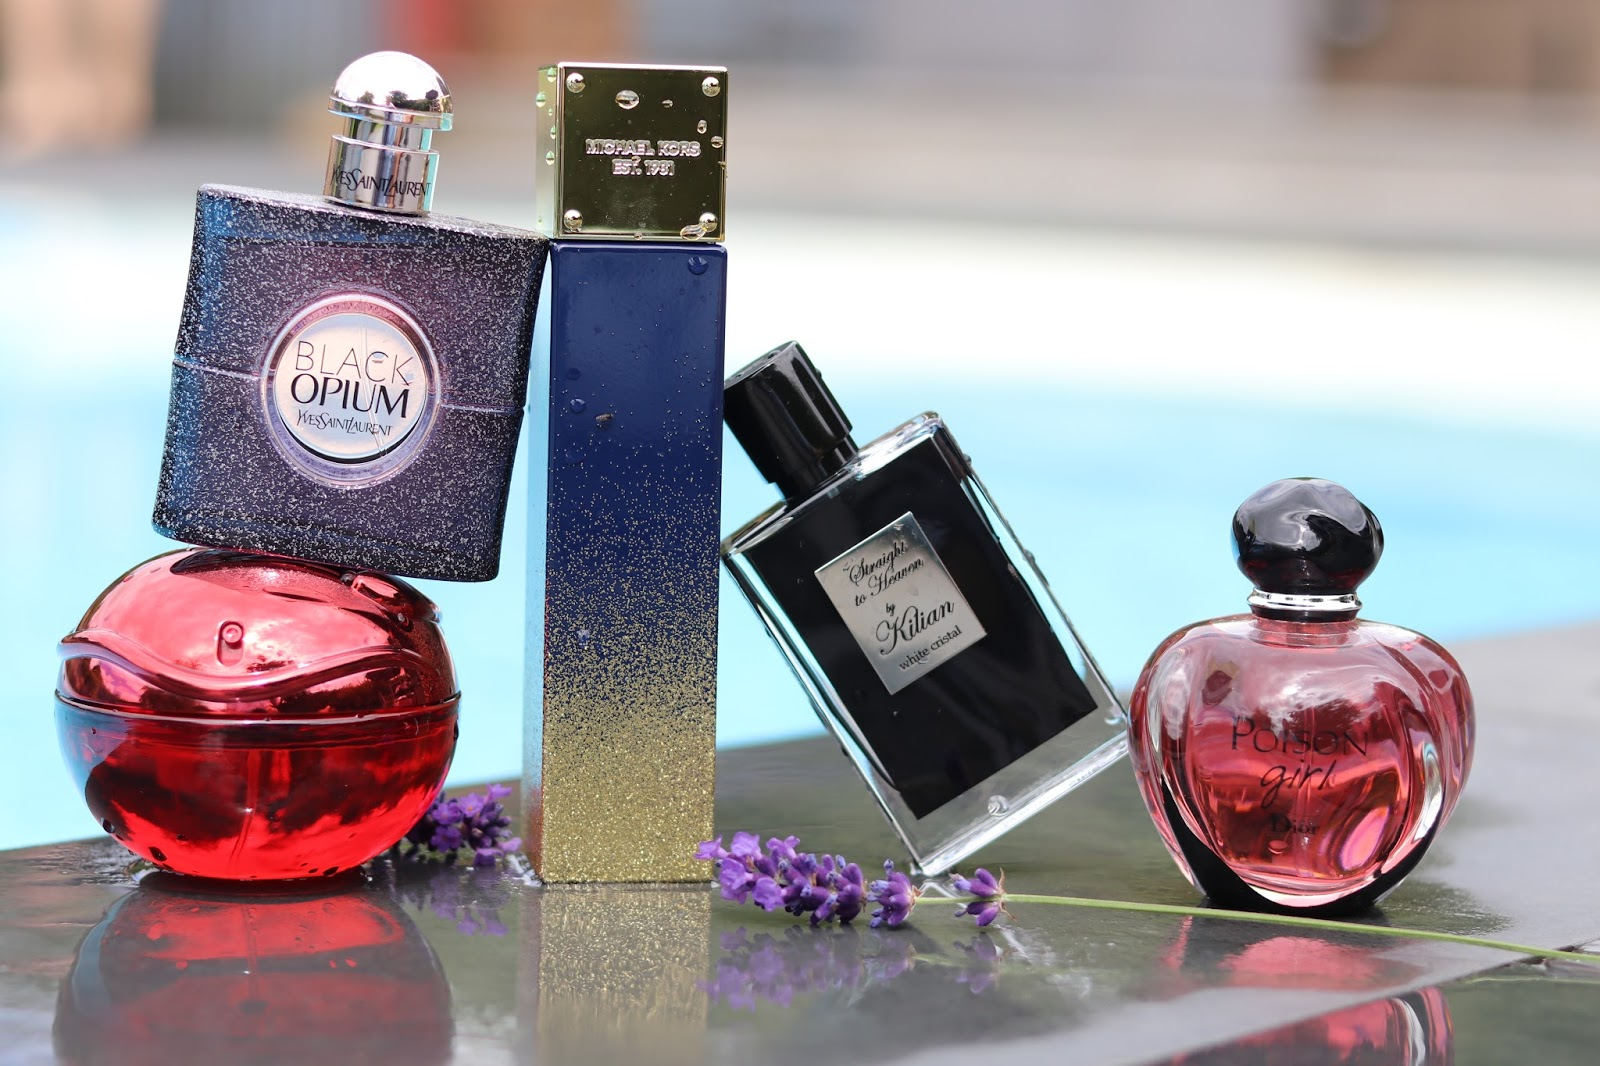 Top 5 Summer Evening Fragrances